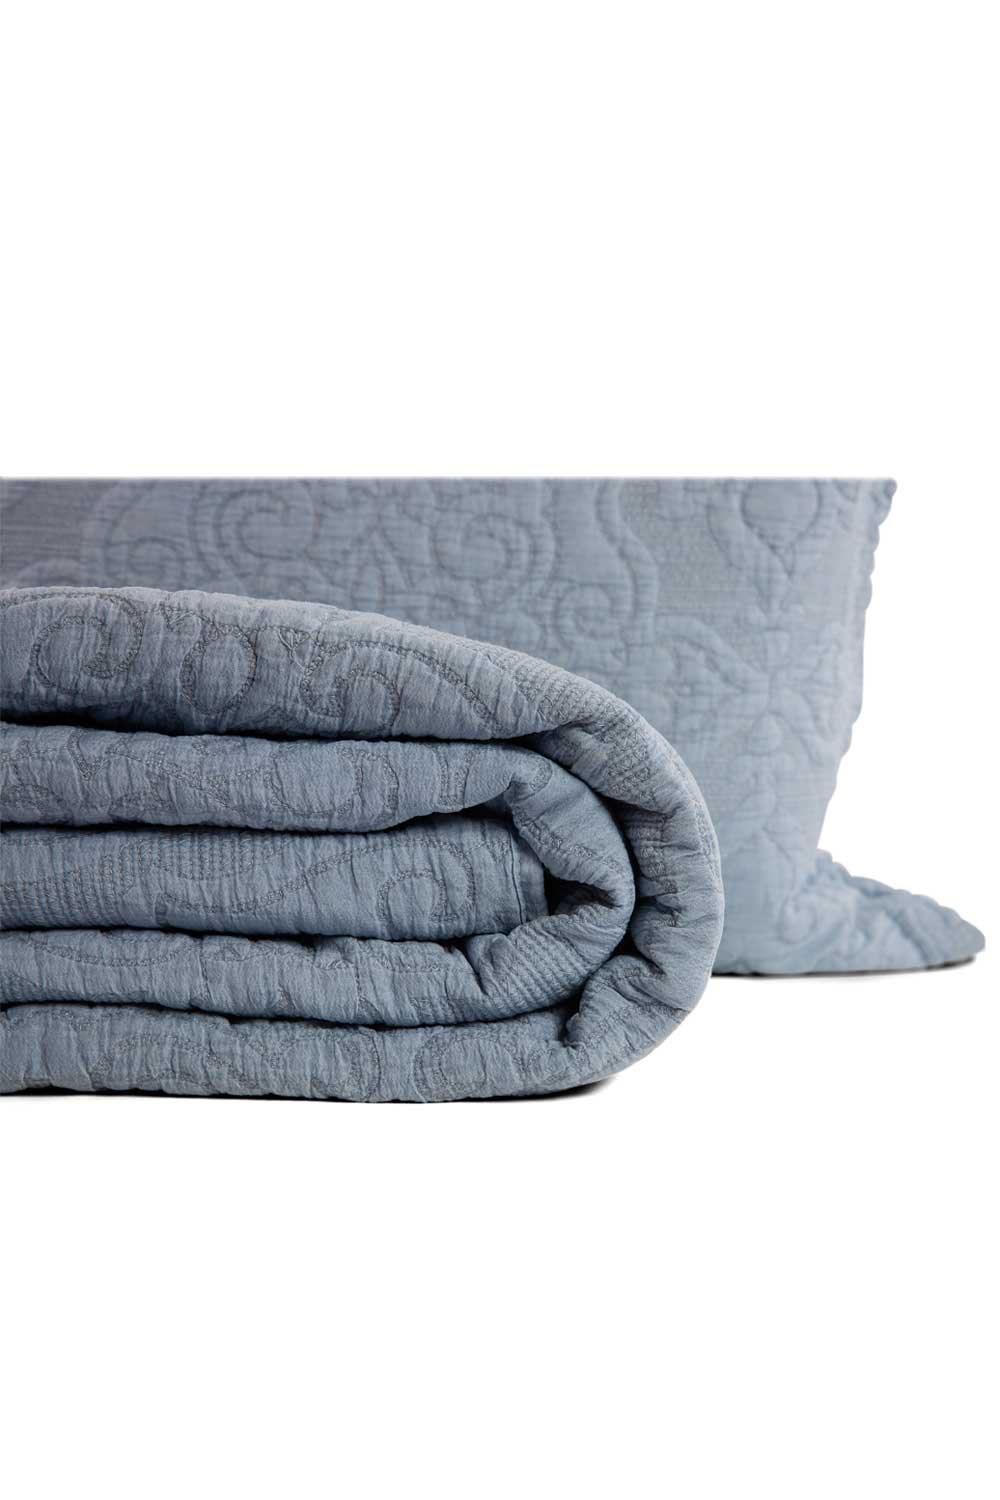 MIZALLE HOME Dark Blue Double Coverlet (260X270) (1)